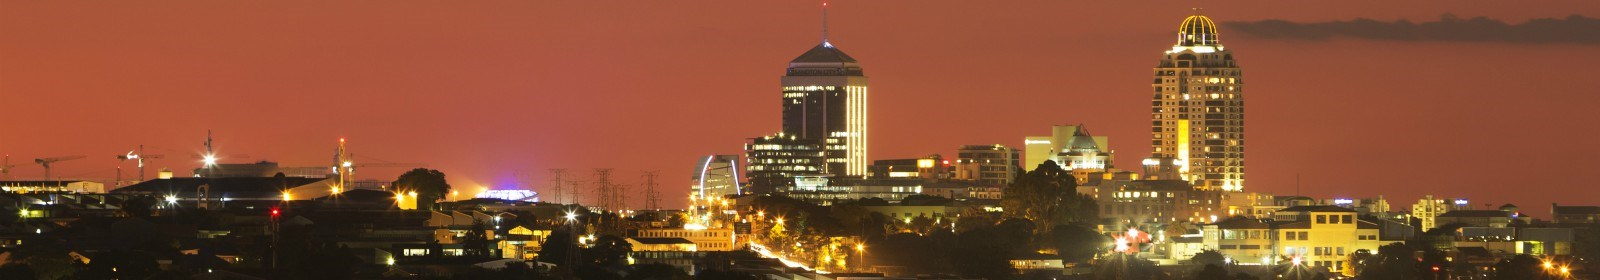 You don't have to be a billionaire to live in Sandton